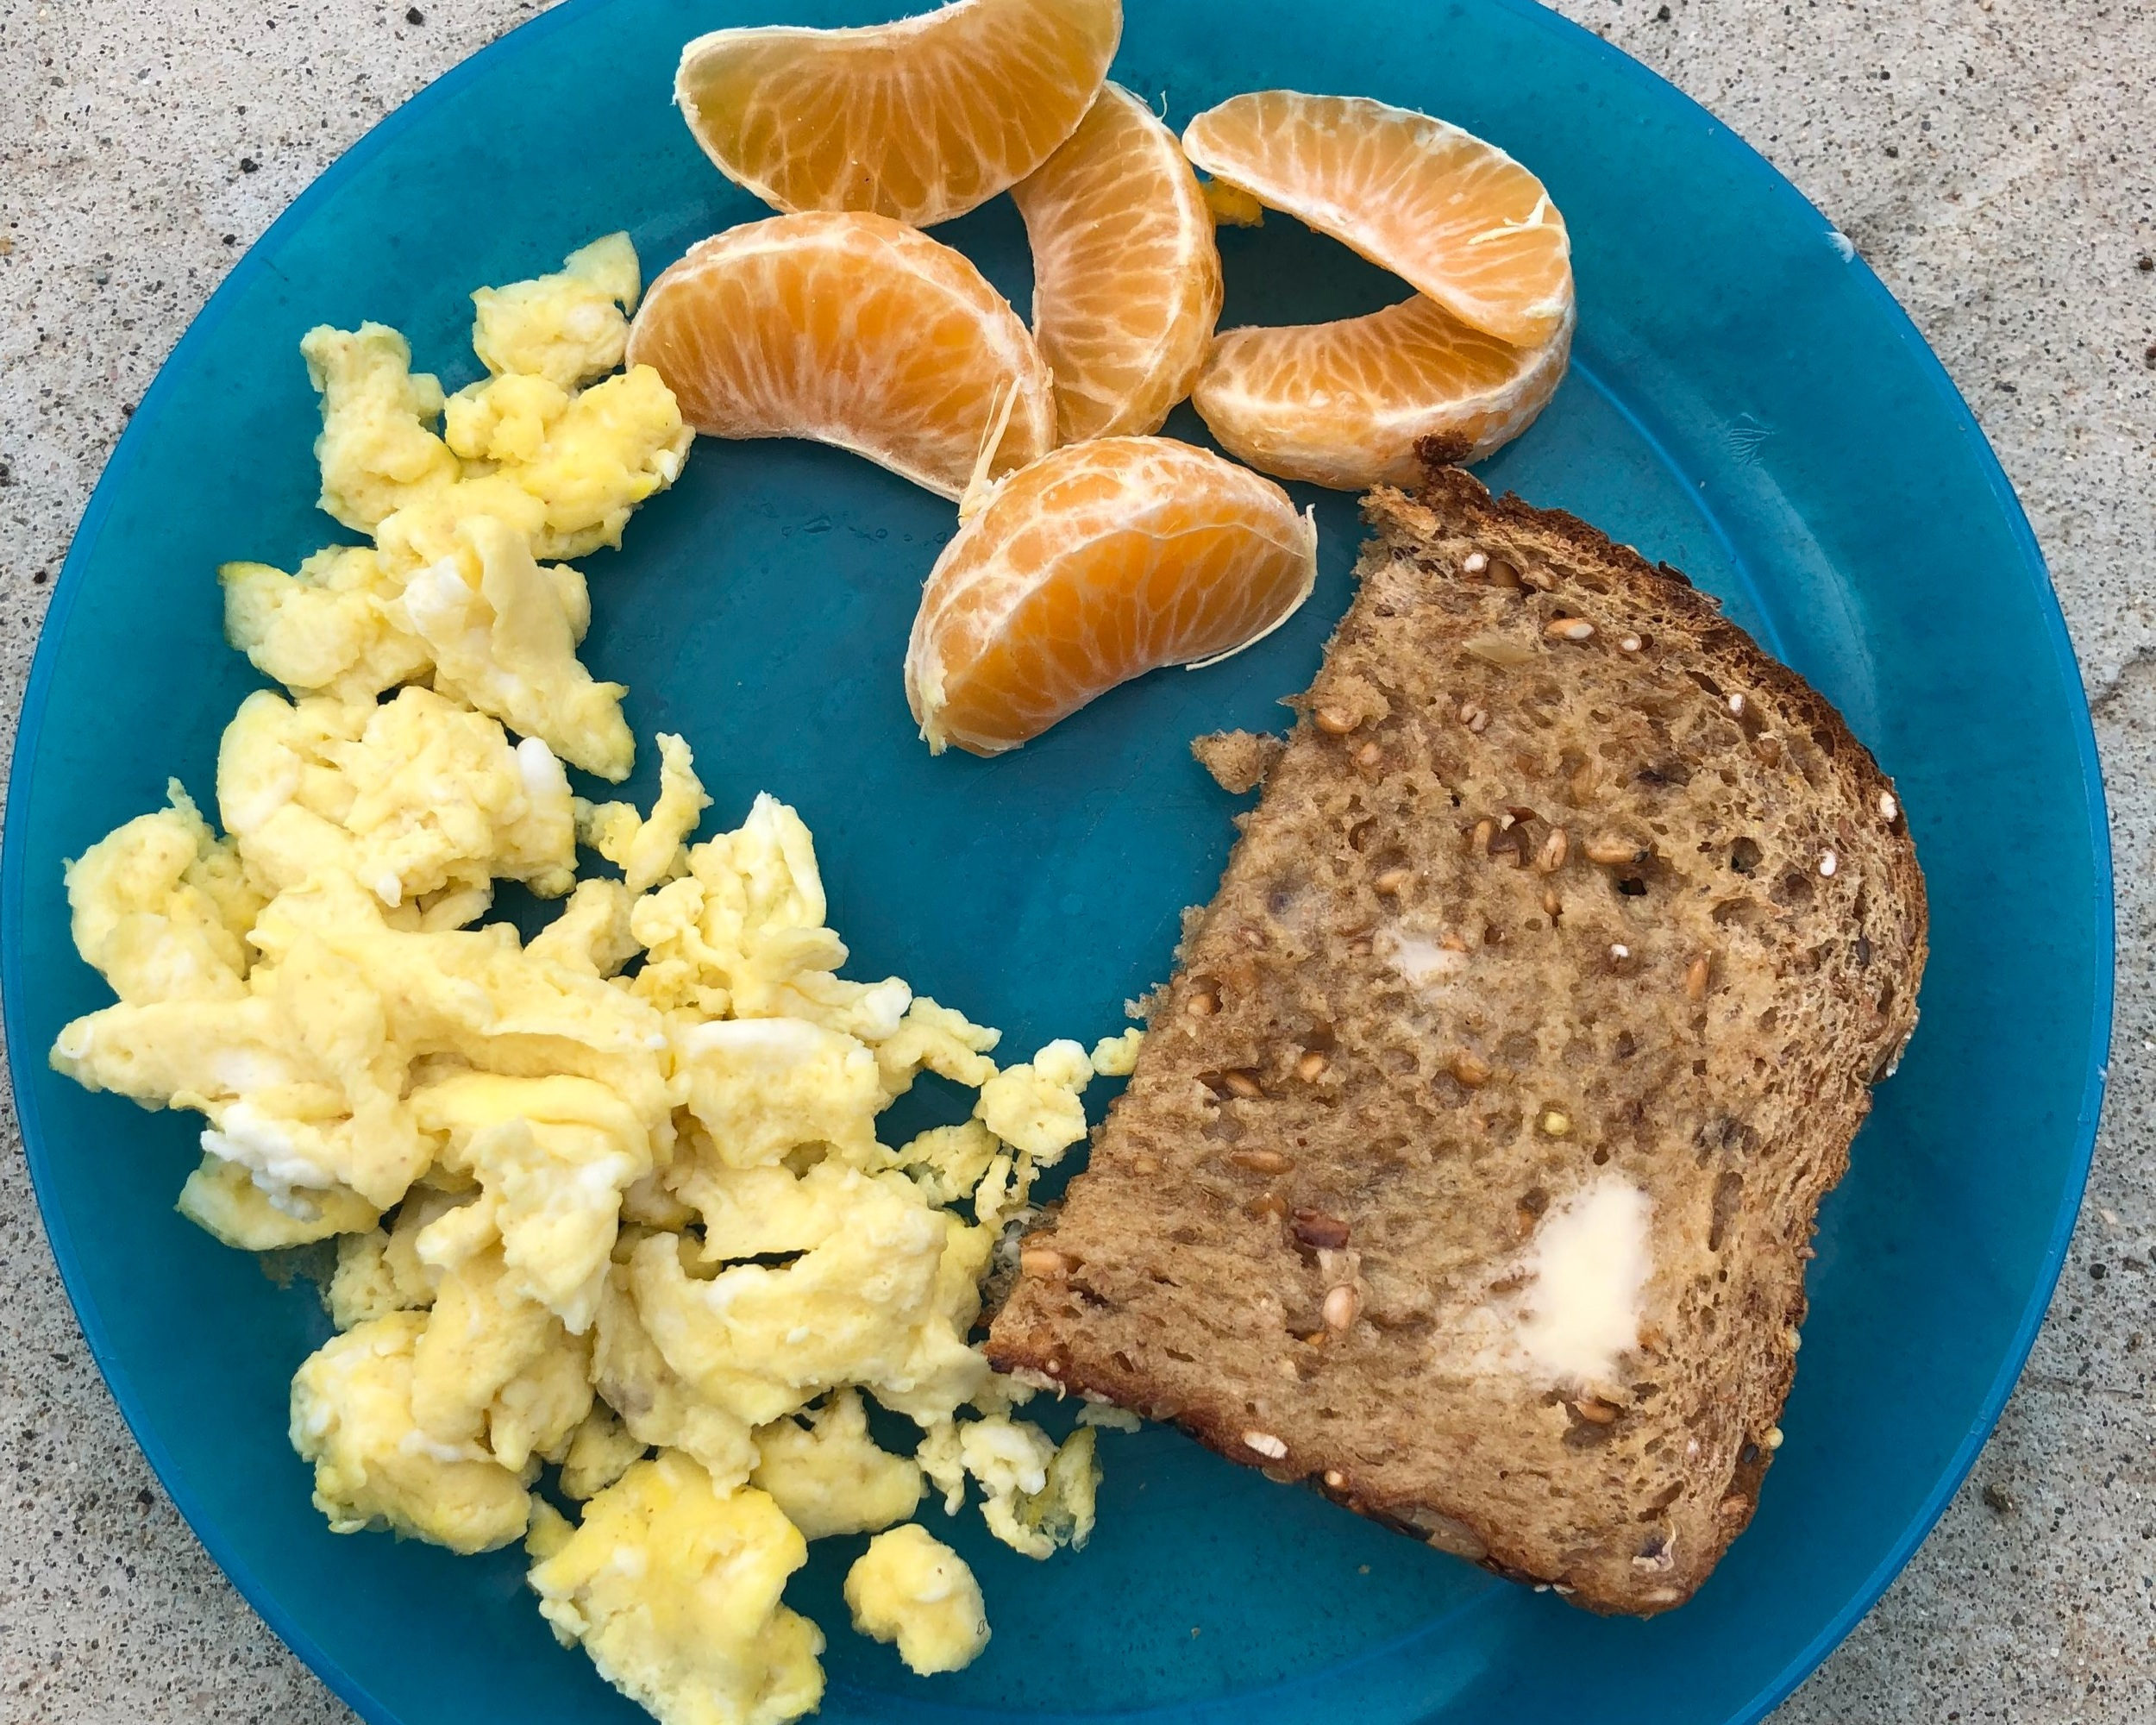 Day 3 - Scrambled eggs, toast and fruitScrambled eggs are my favorite breakfast food. They are easy and packed with nutrition. But, I know, along with everything else, I can't serve them every day or a food jag will happen. I occasionally add seasoning to my eggs, like garlic powder and cumin. Bonus if my 4 year old helps me as well - when she helps me prepare the food, she is more likely to eat it at breakfast time!